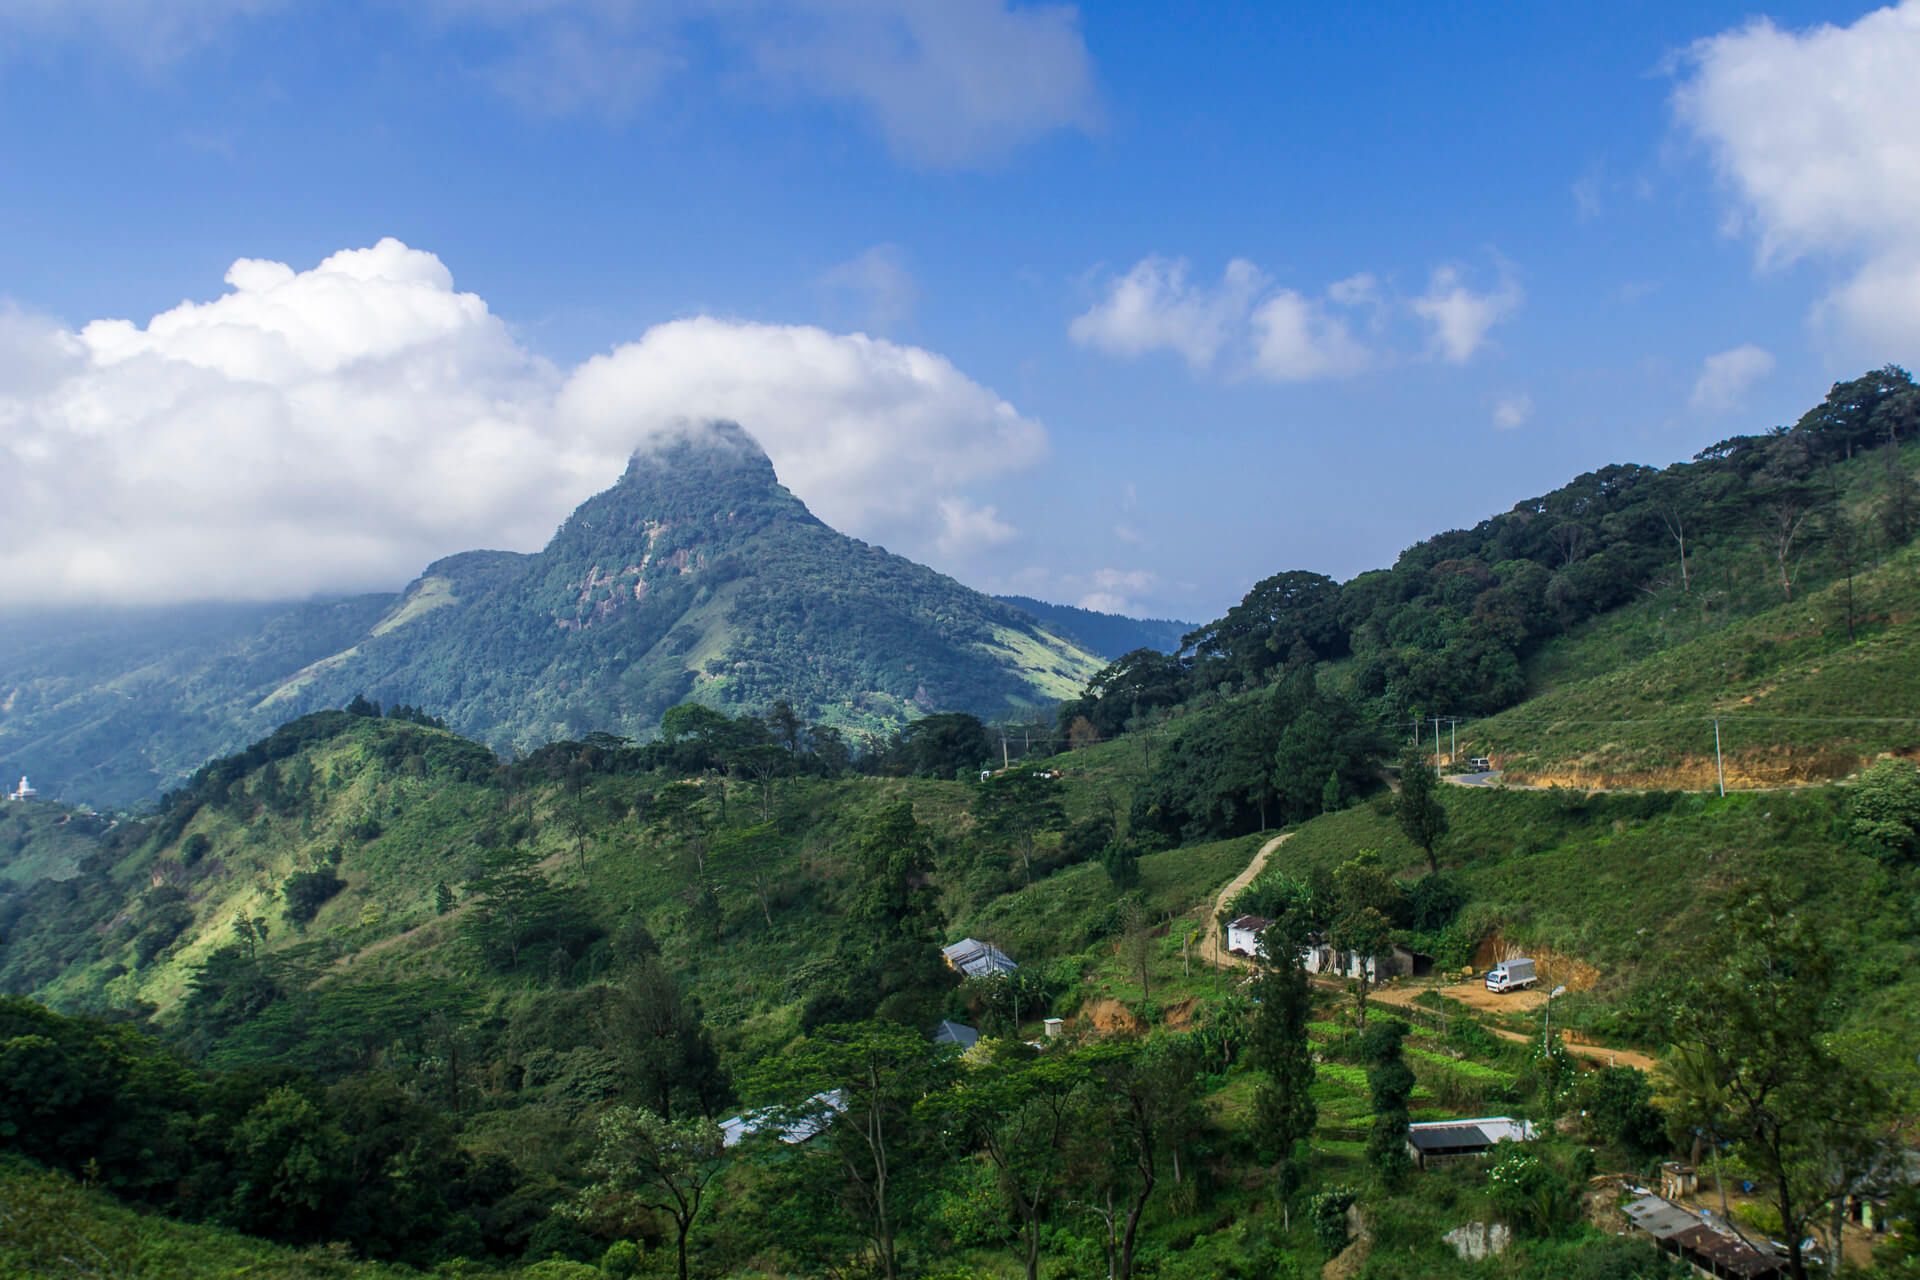 Knuckles Mountain Range and villages - unique places to visit in Sri Lanka